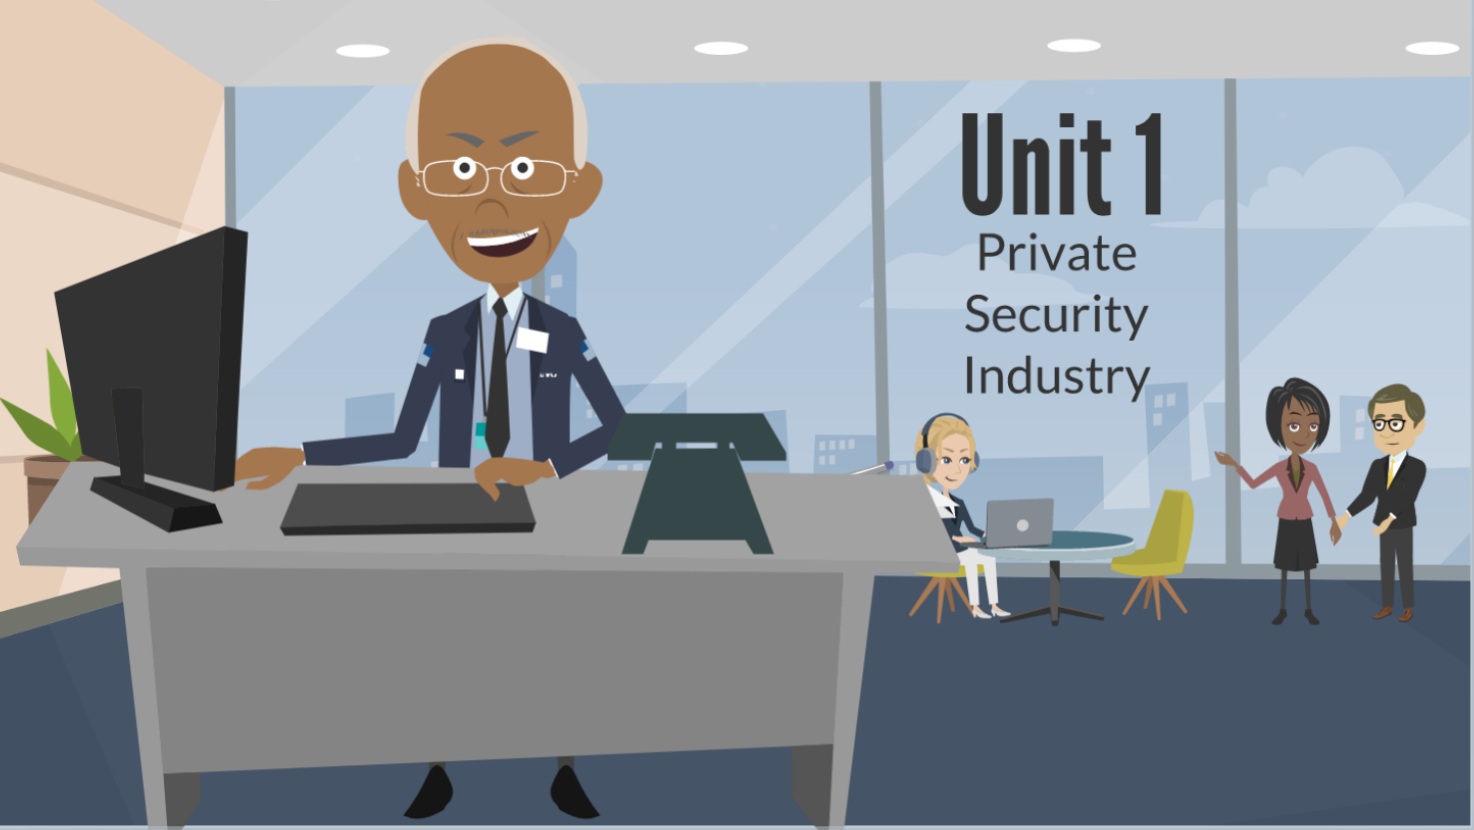 The Private